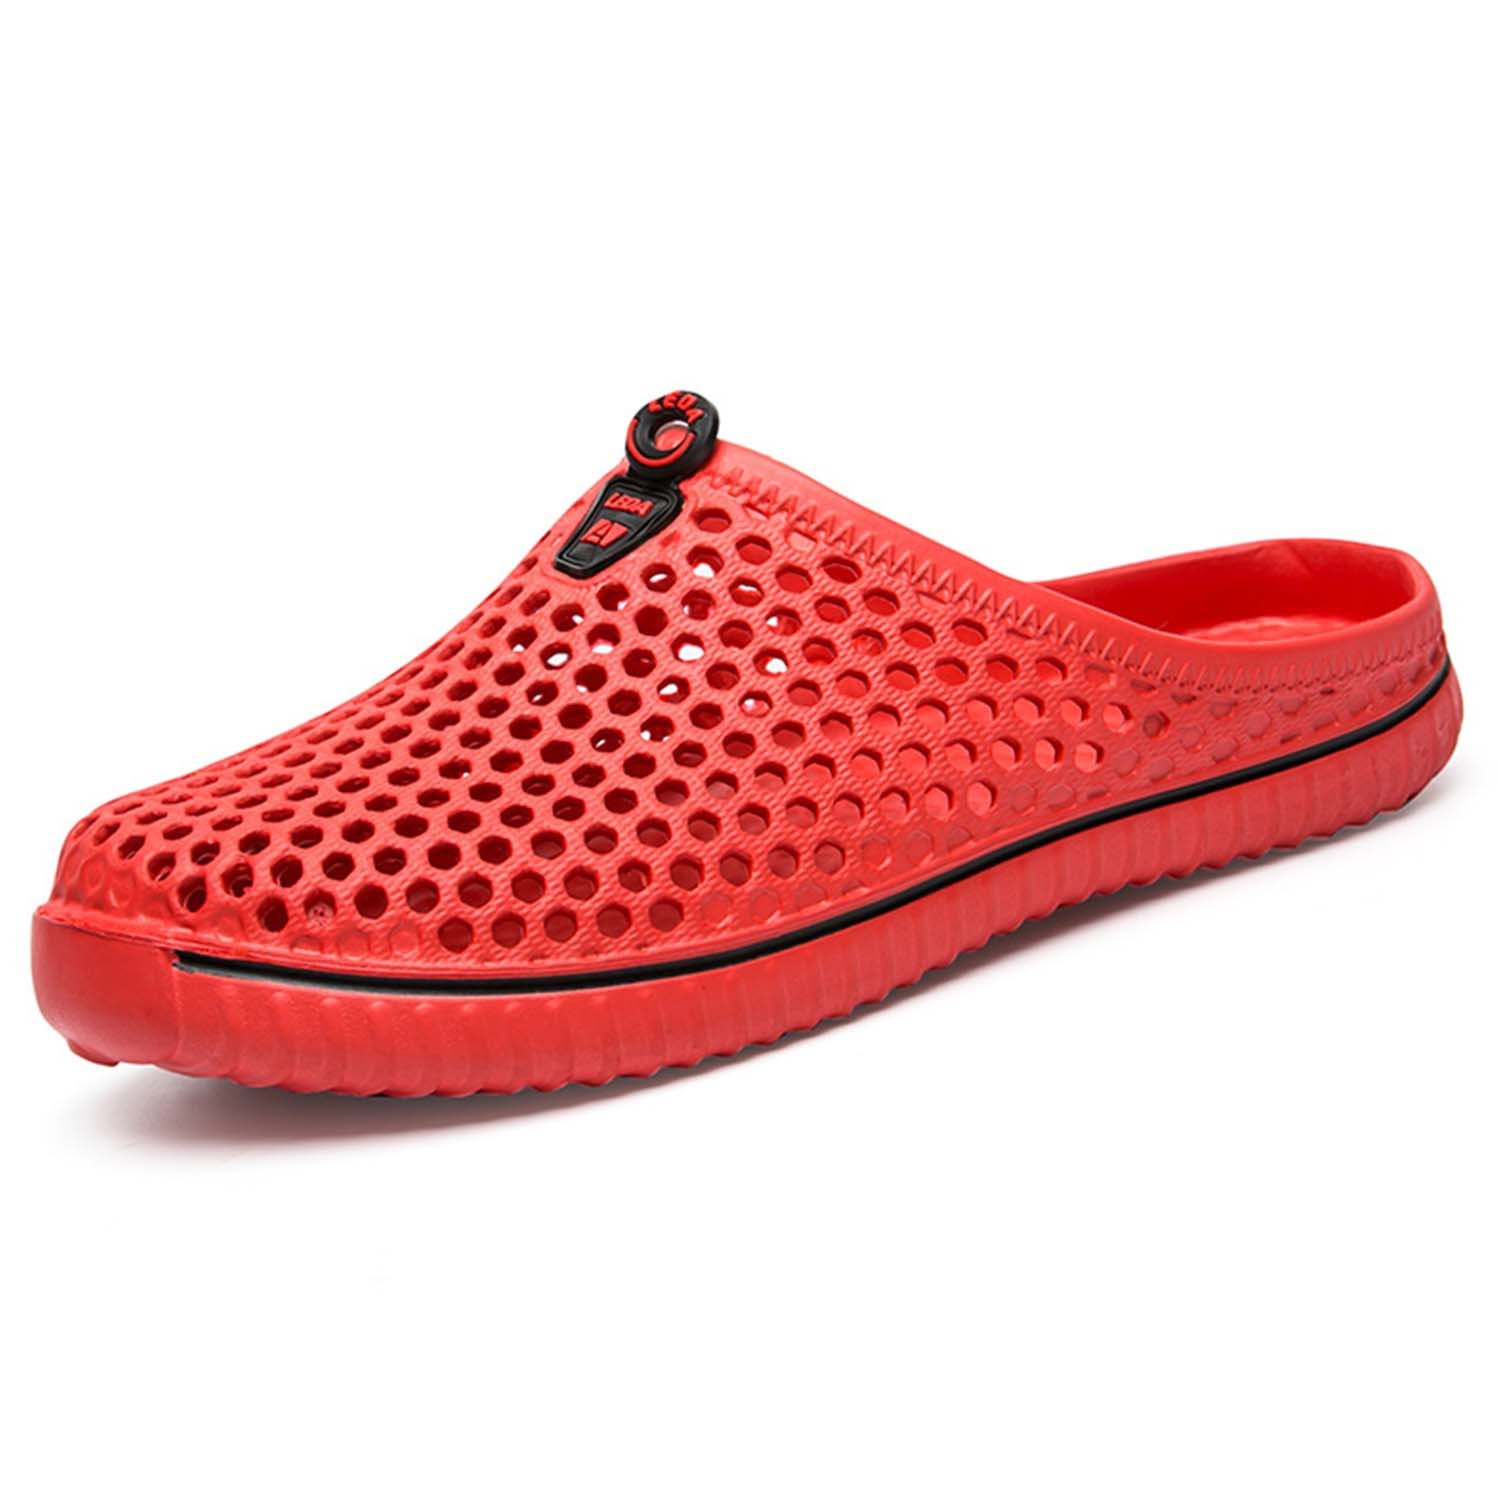 PHILDA Garden Clogs Water Shoes Quick Dry Mesh Sandals Breathable Mule Beach Sport Indoor Outdoor Shower Slippers for Men Women Red 42